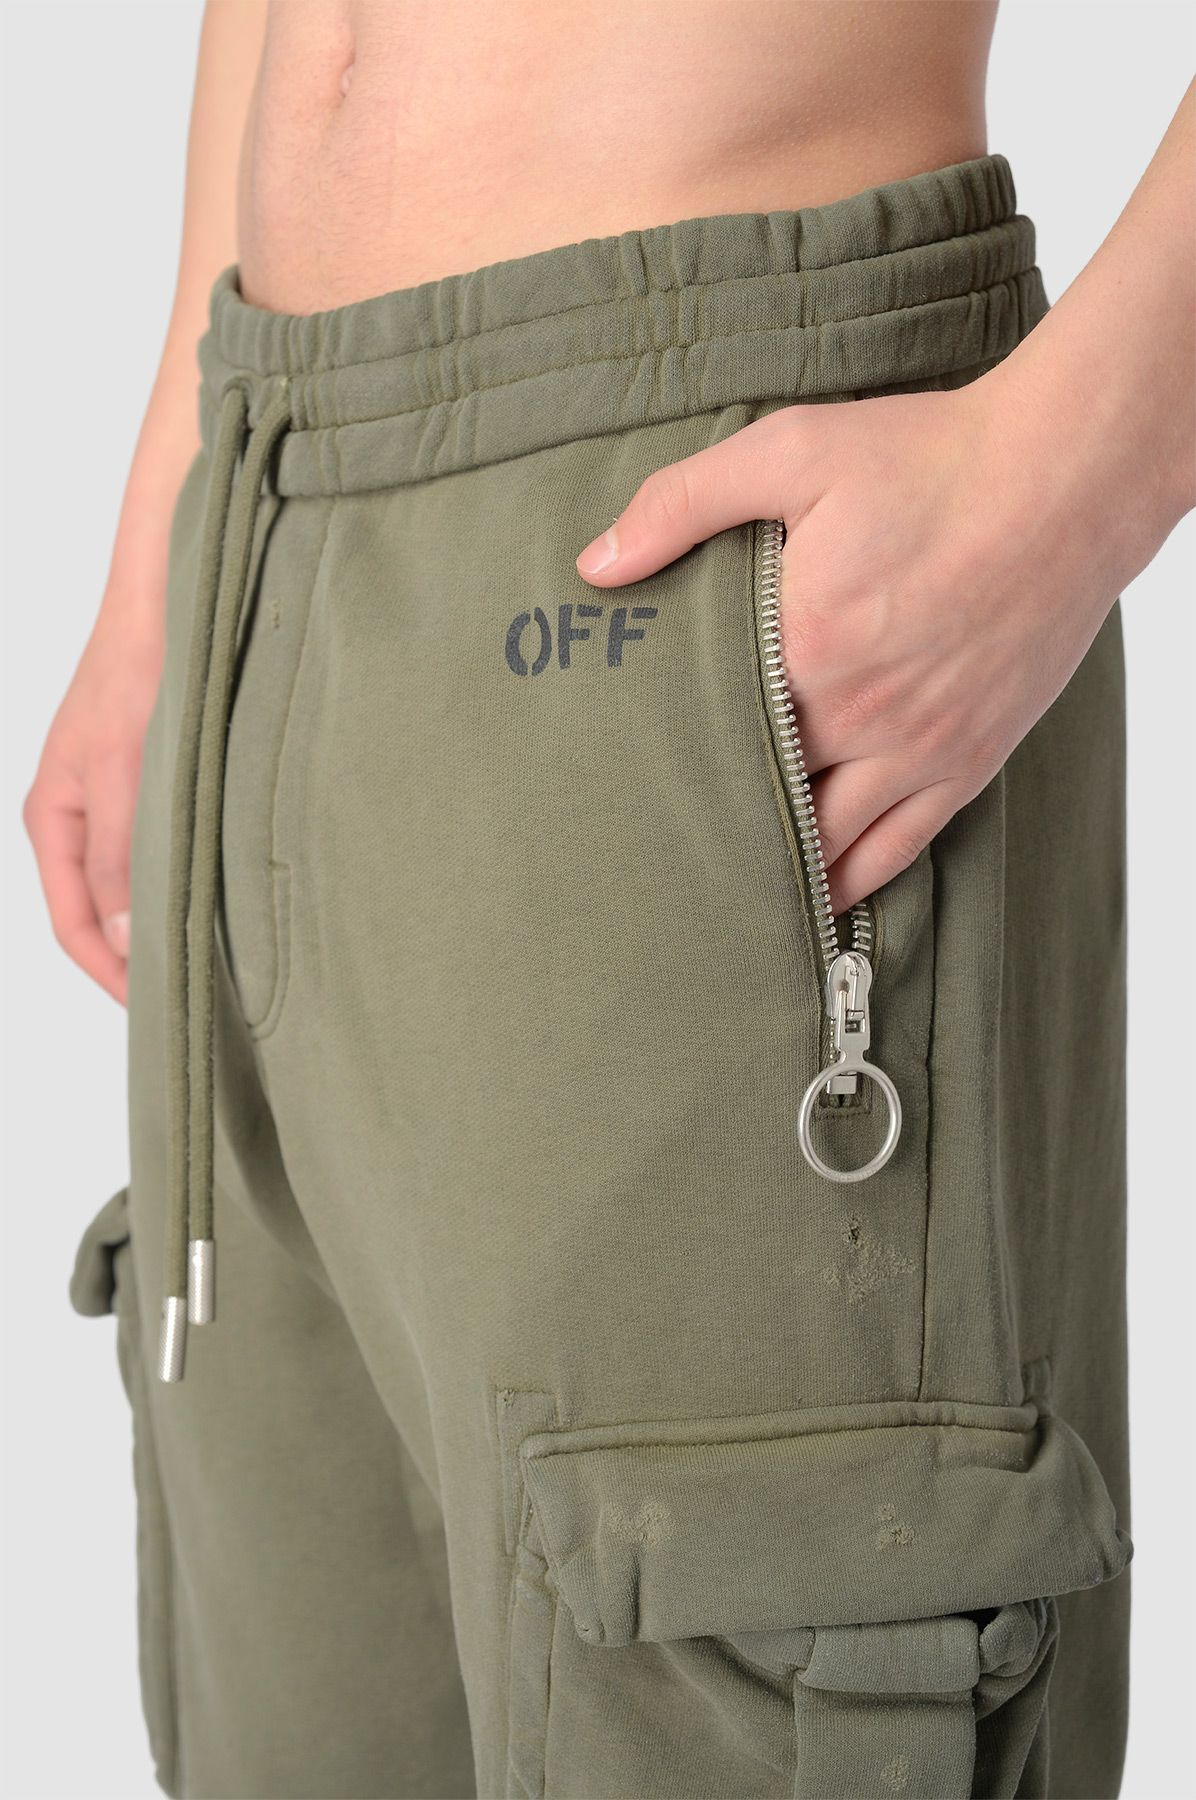 OFF-WHITE Washed Cargo Pants